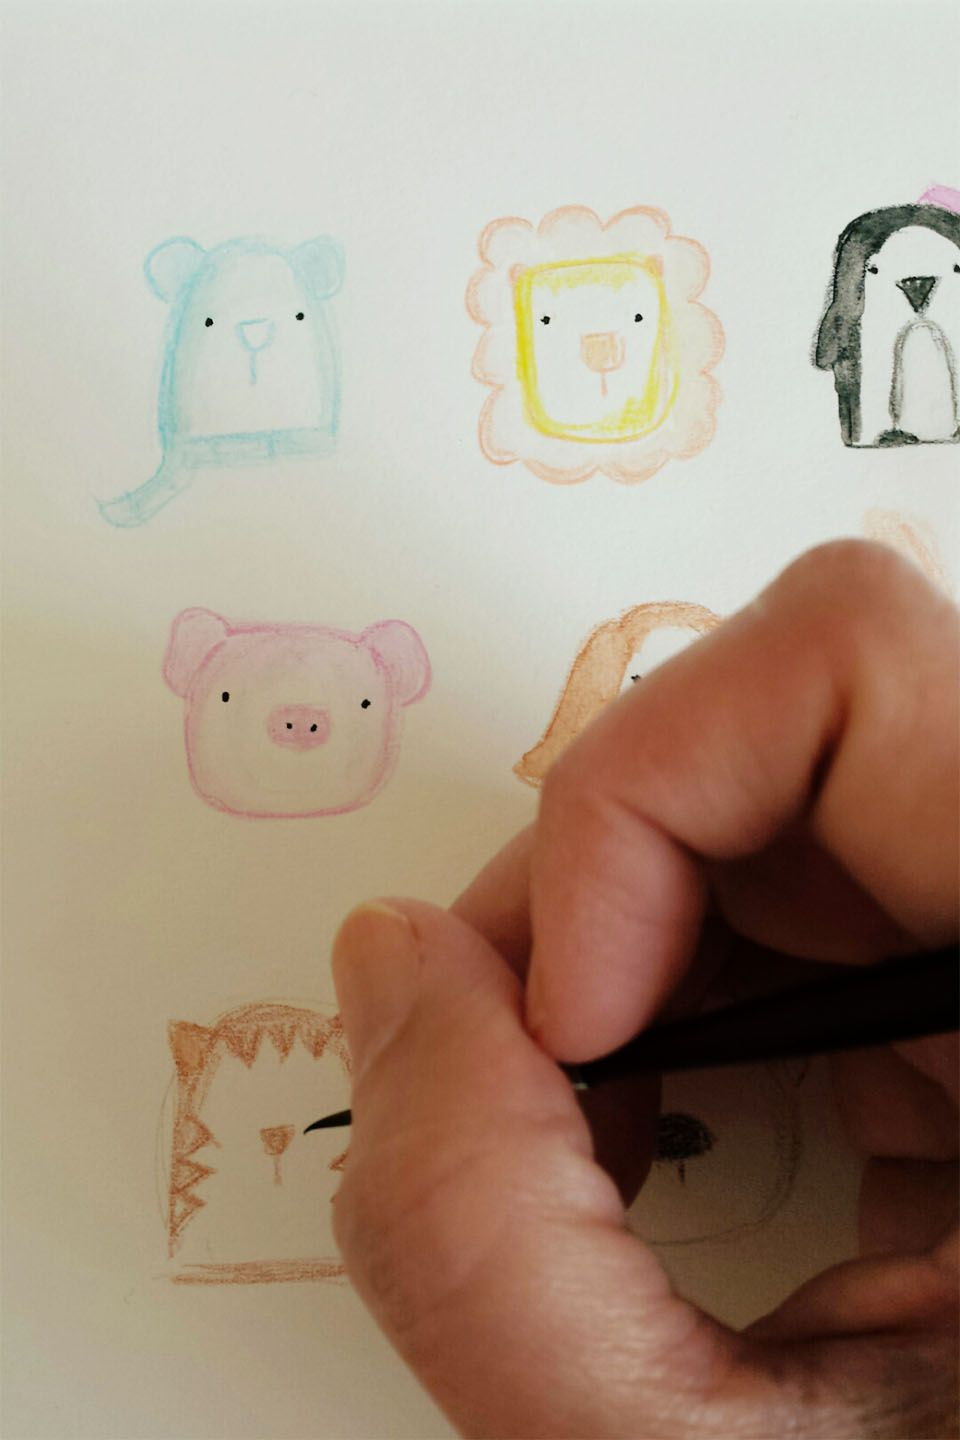 Yes to draw cute! - image 1 - student project